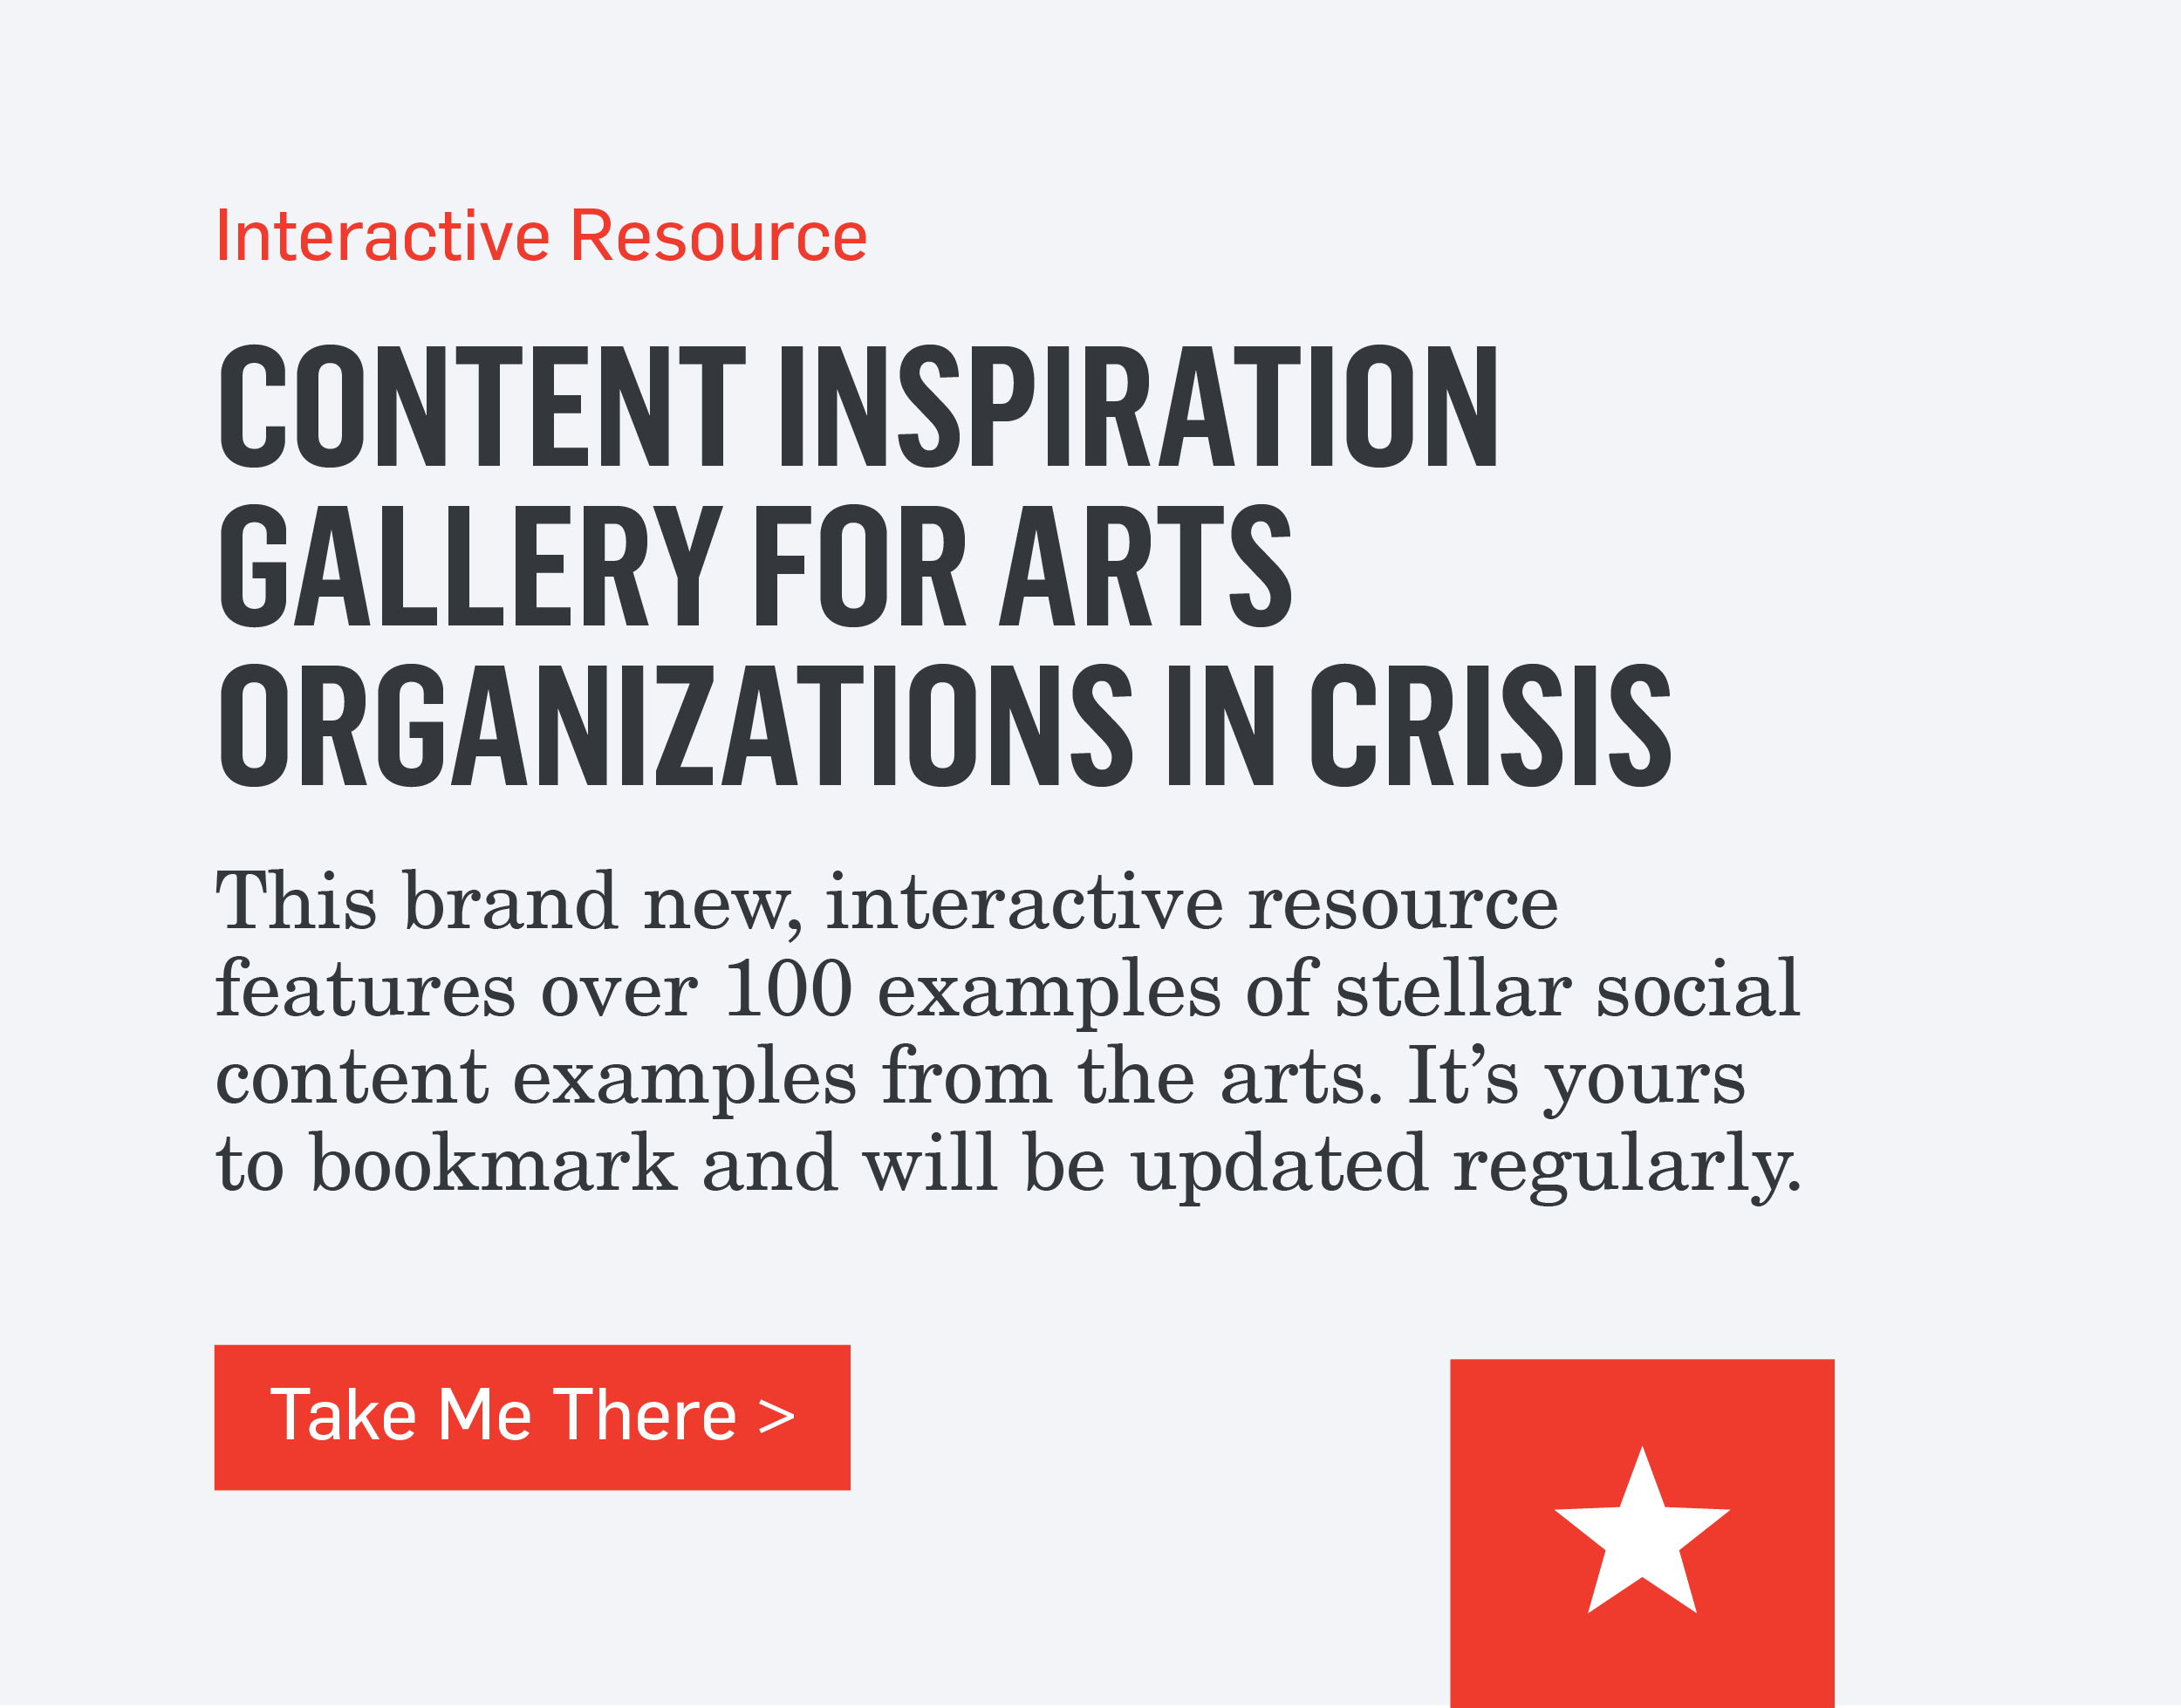 Interactive Resource - CONTENT INSPIRATION GALLERY FOR ARTS ORGANIZATIONS IN CRISIS - This brand new, interactive resource features over 100 examples of stellar social content examples from the arts. It's yours to bookmark and will be updated regularly and will help you create meaningful and authentic content during this uncertain time. >>>Take Me There>>>